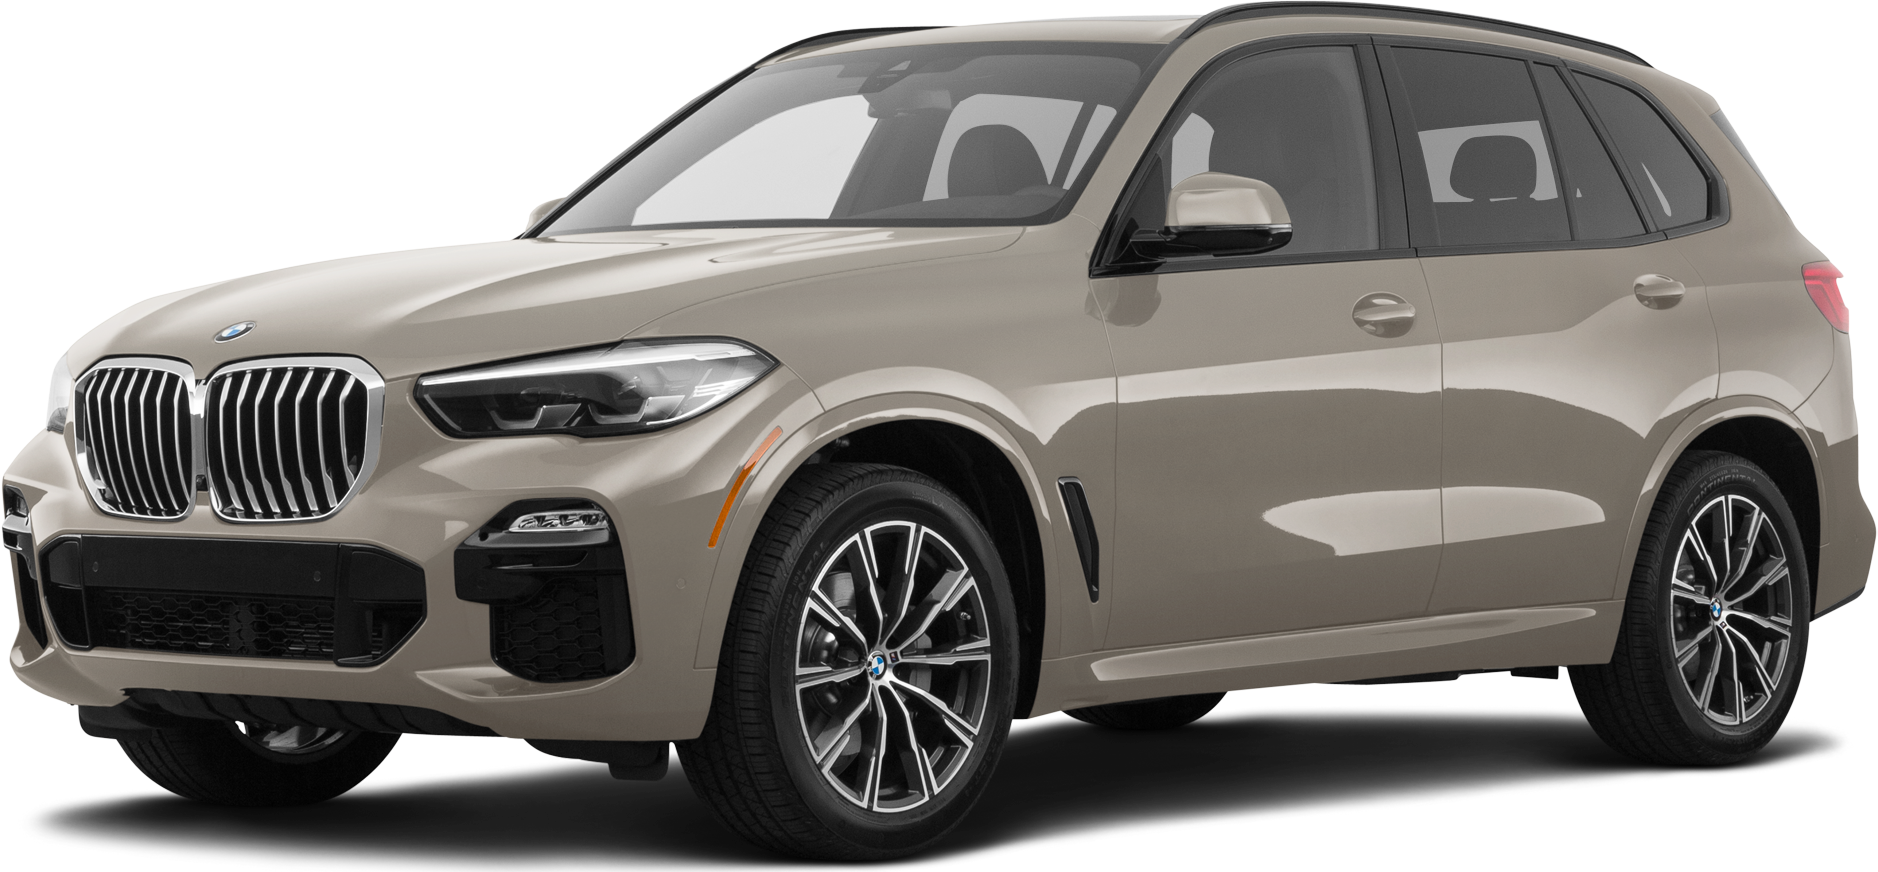 2019 Bmw X5 Values Cars For Sale Kelley Blue Book